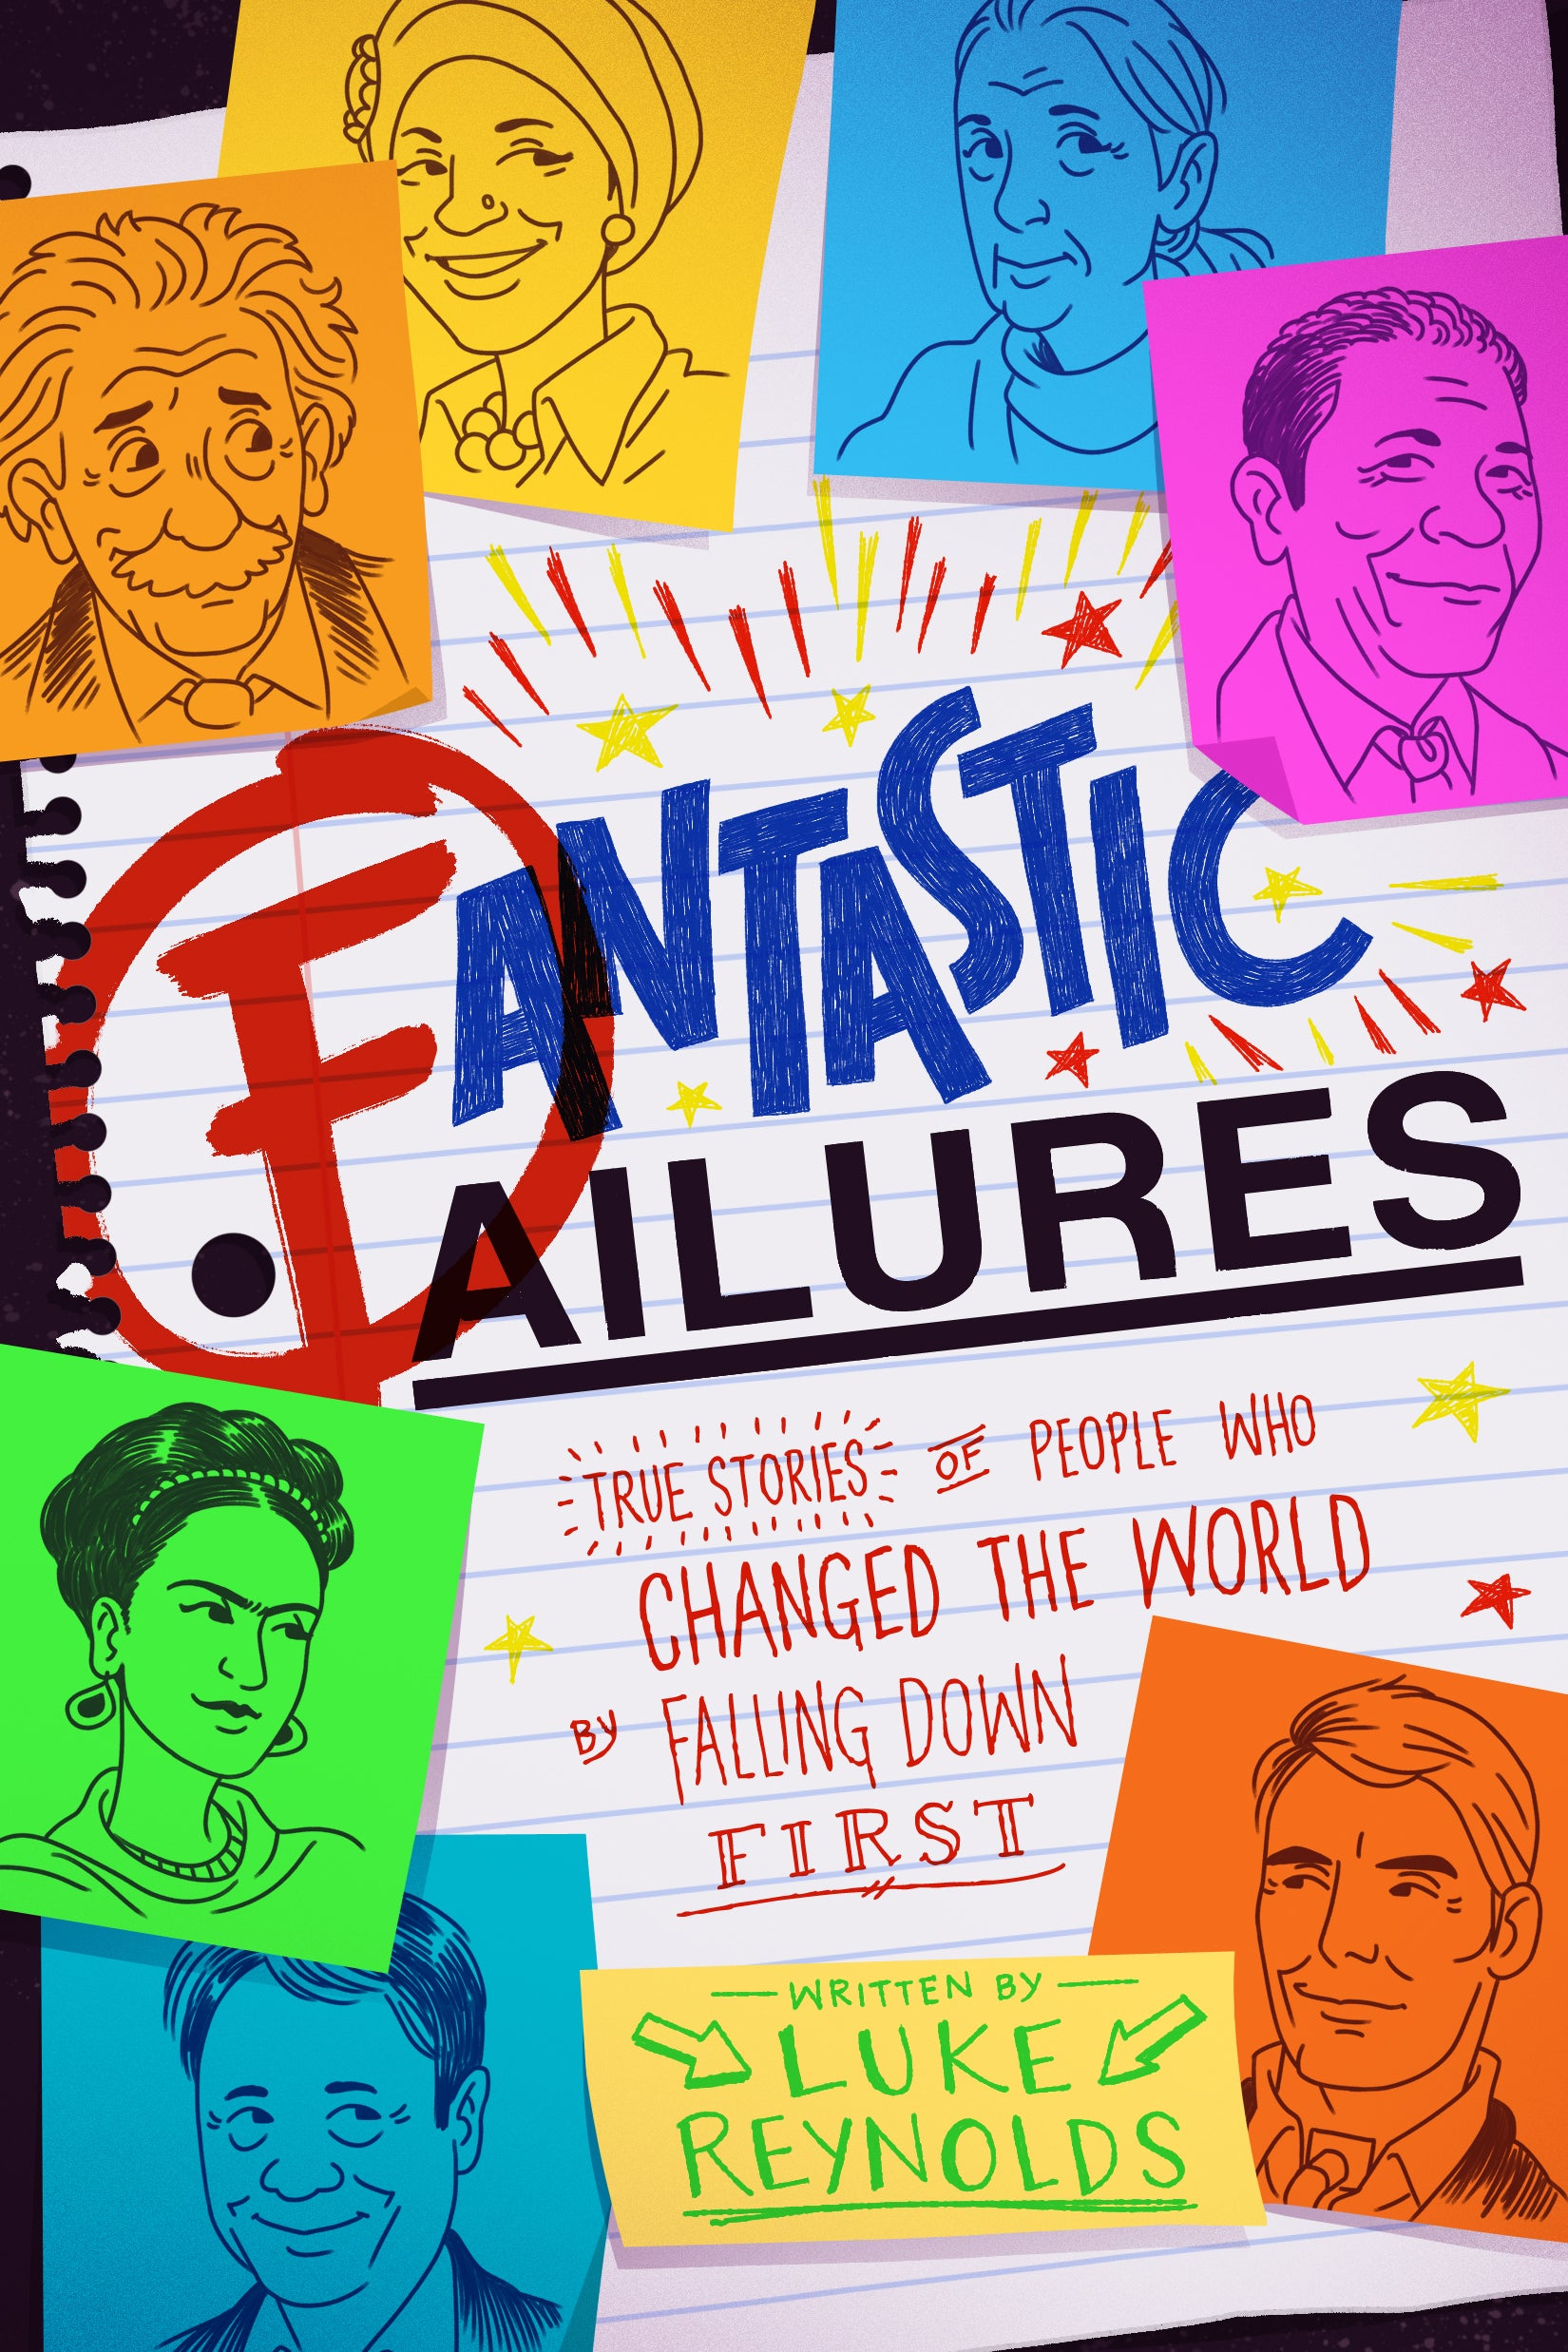 Fantastic Failures True Stories of People Who Changed the World by Falling Down First by Luke Reynolds